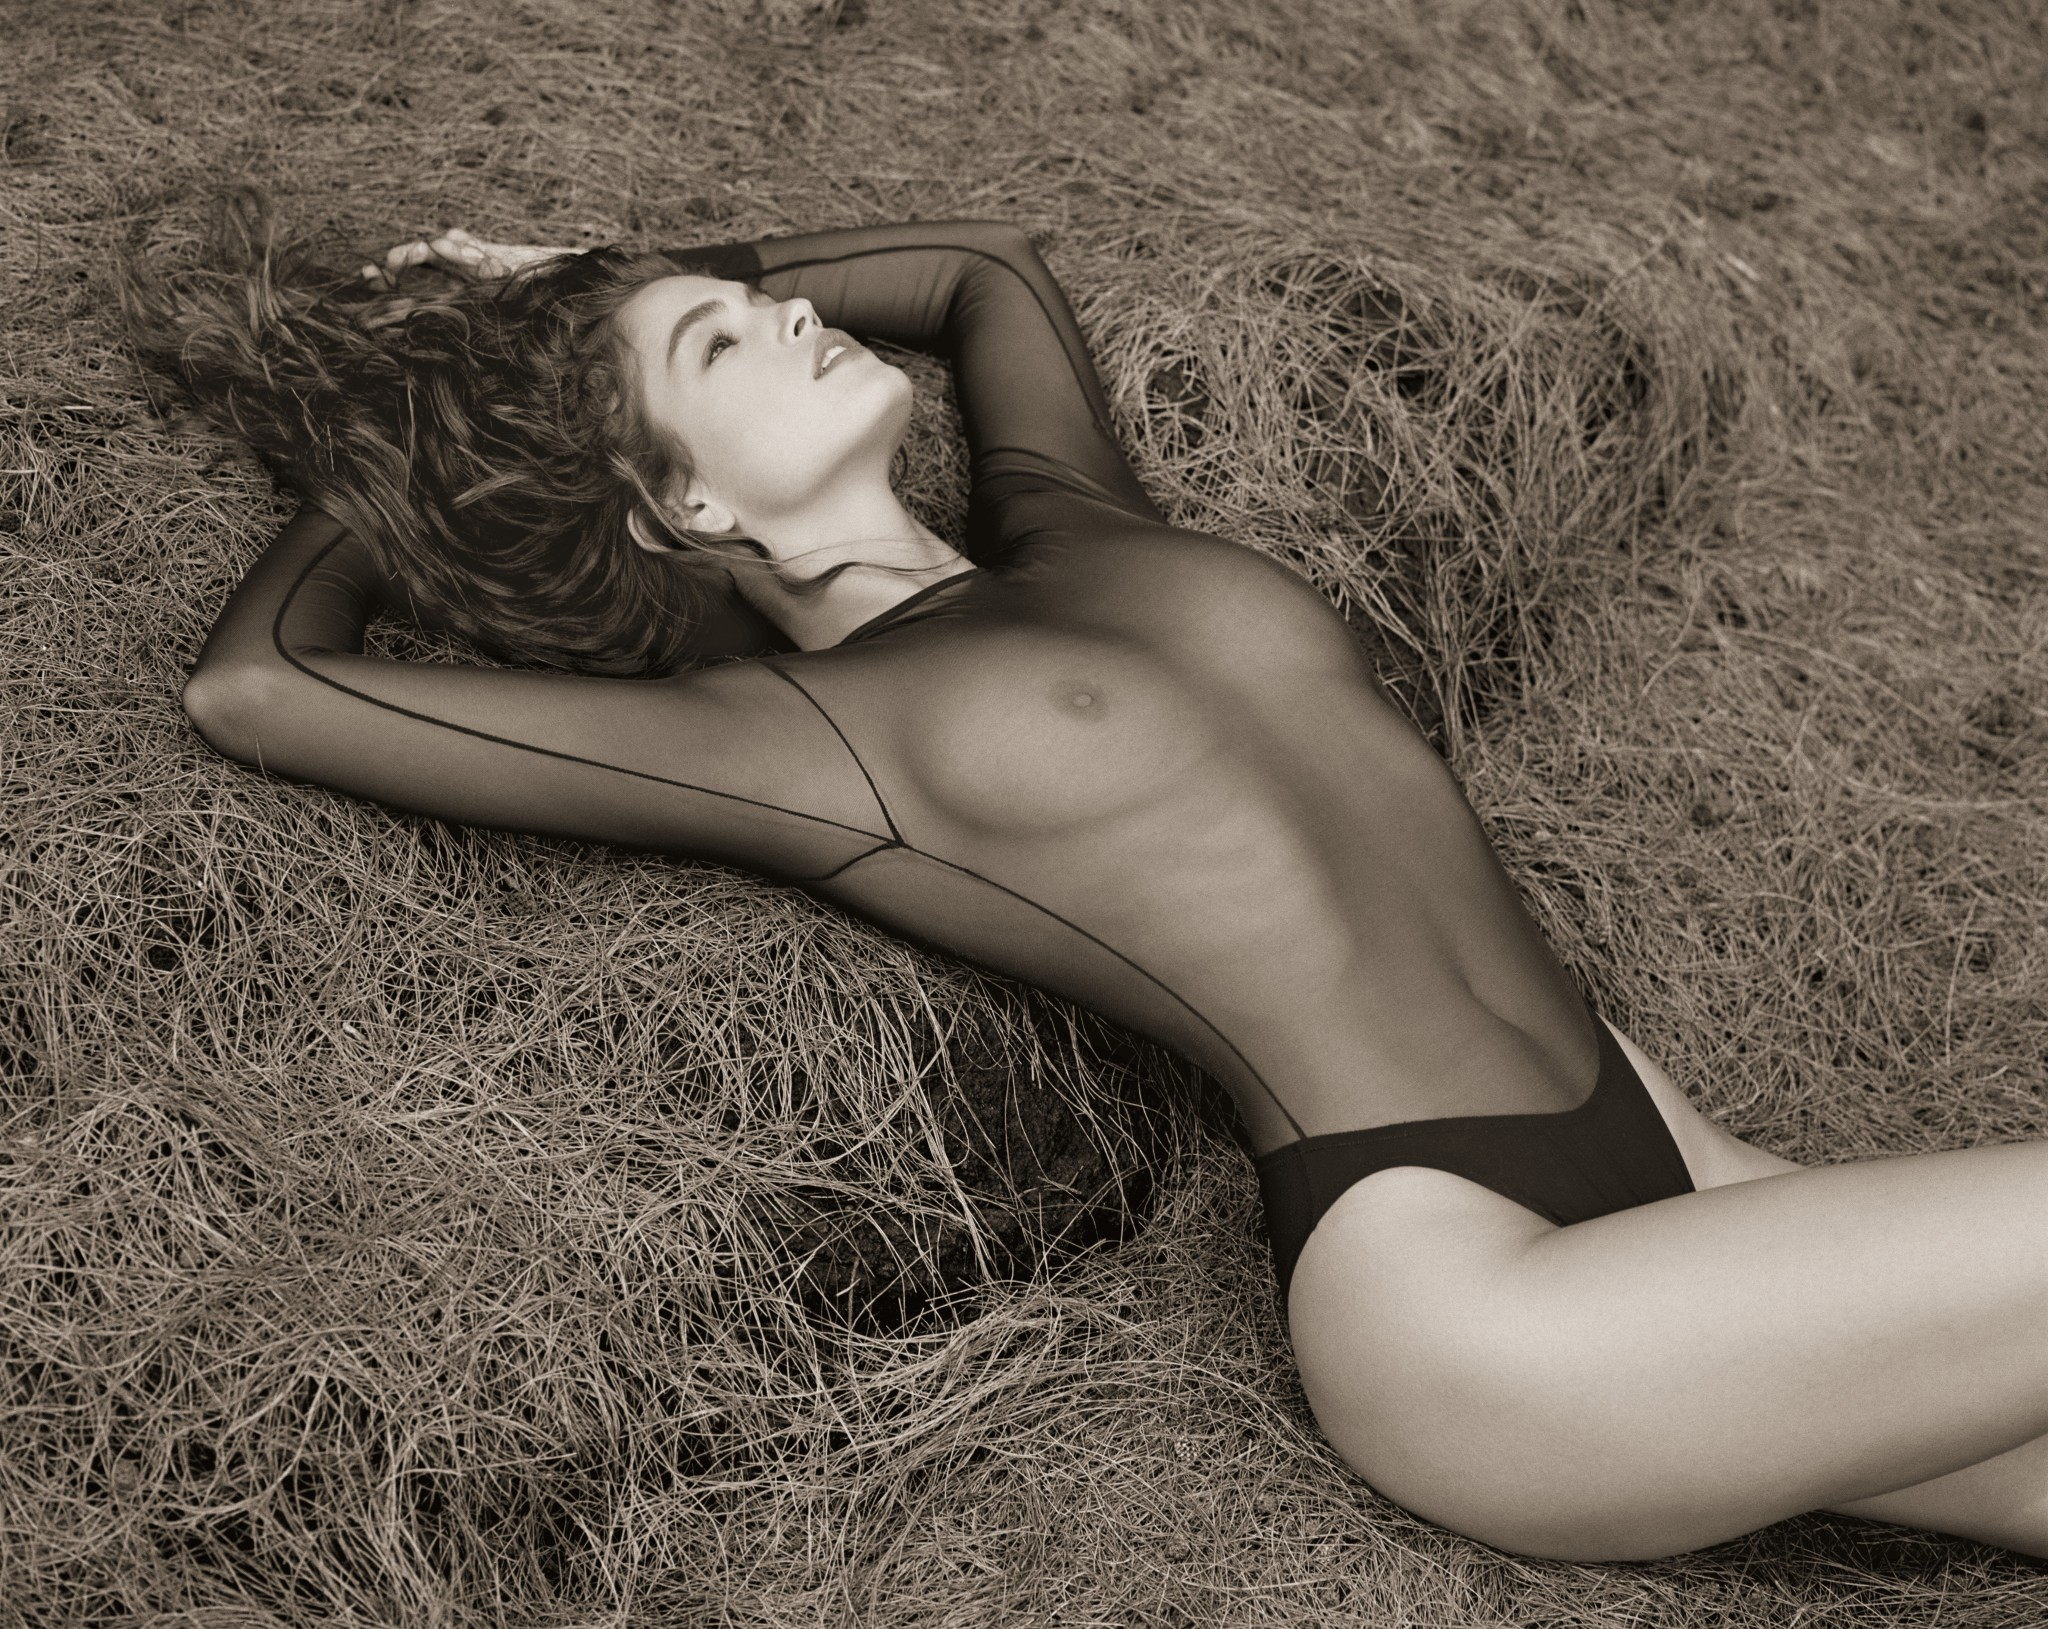 Cindy Crawford topless in a Herb Ritts photo